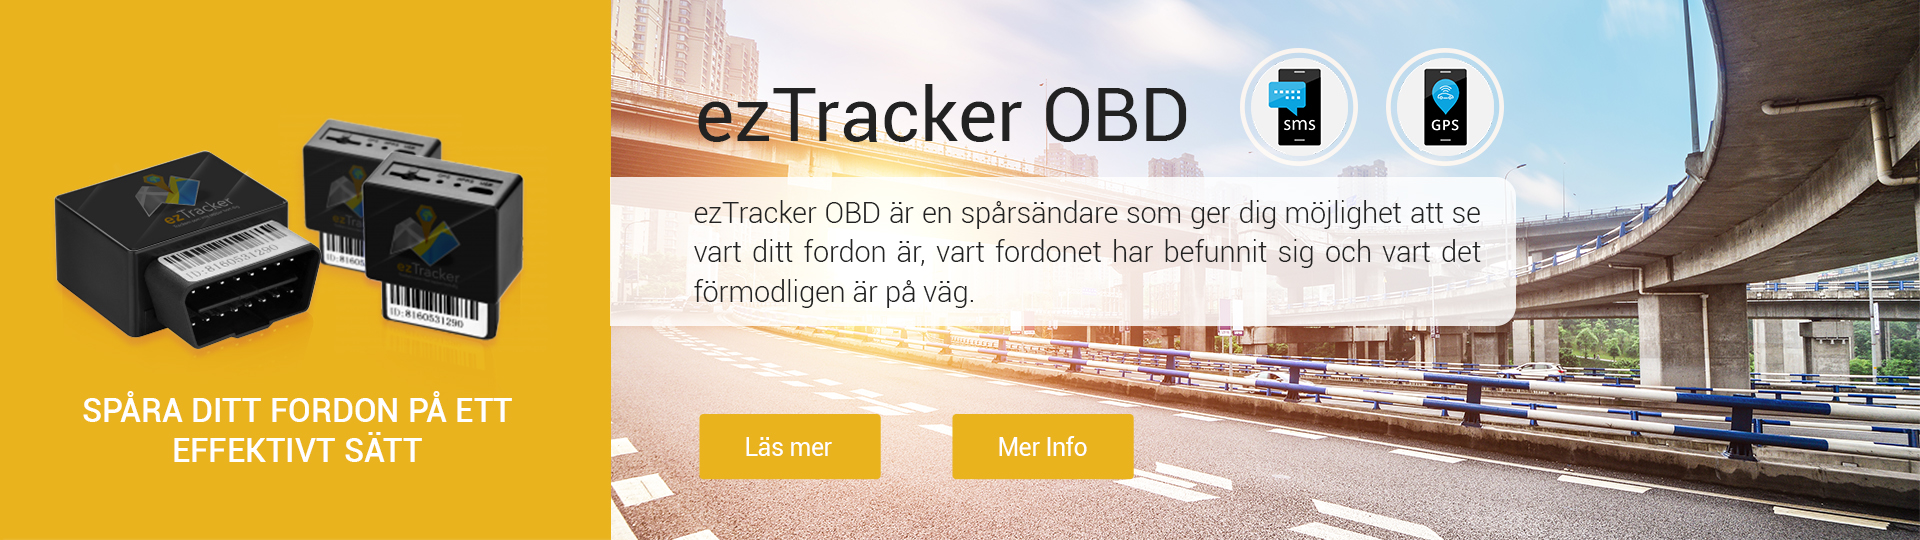 1920Õ540_banner for ezTracker OBD_01